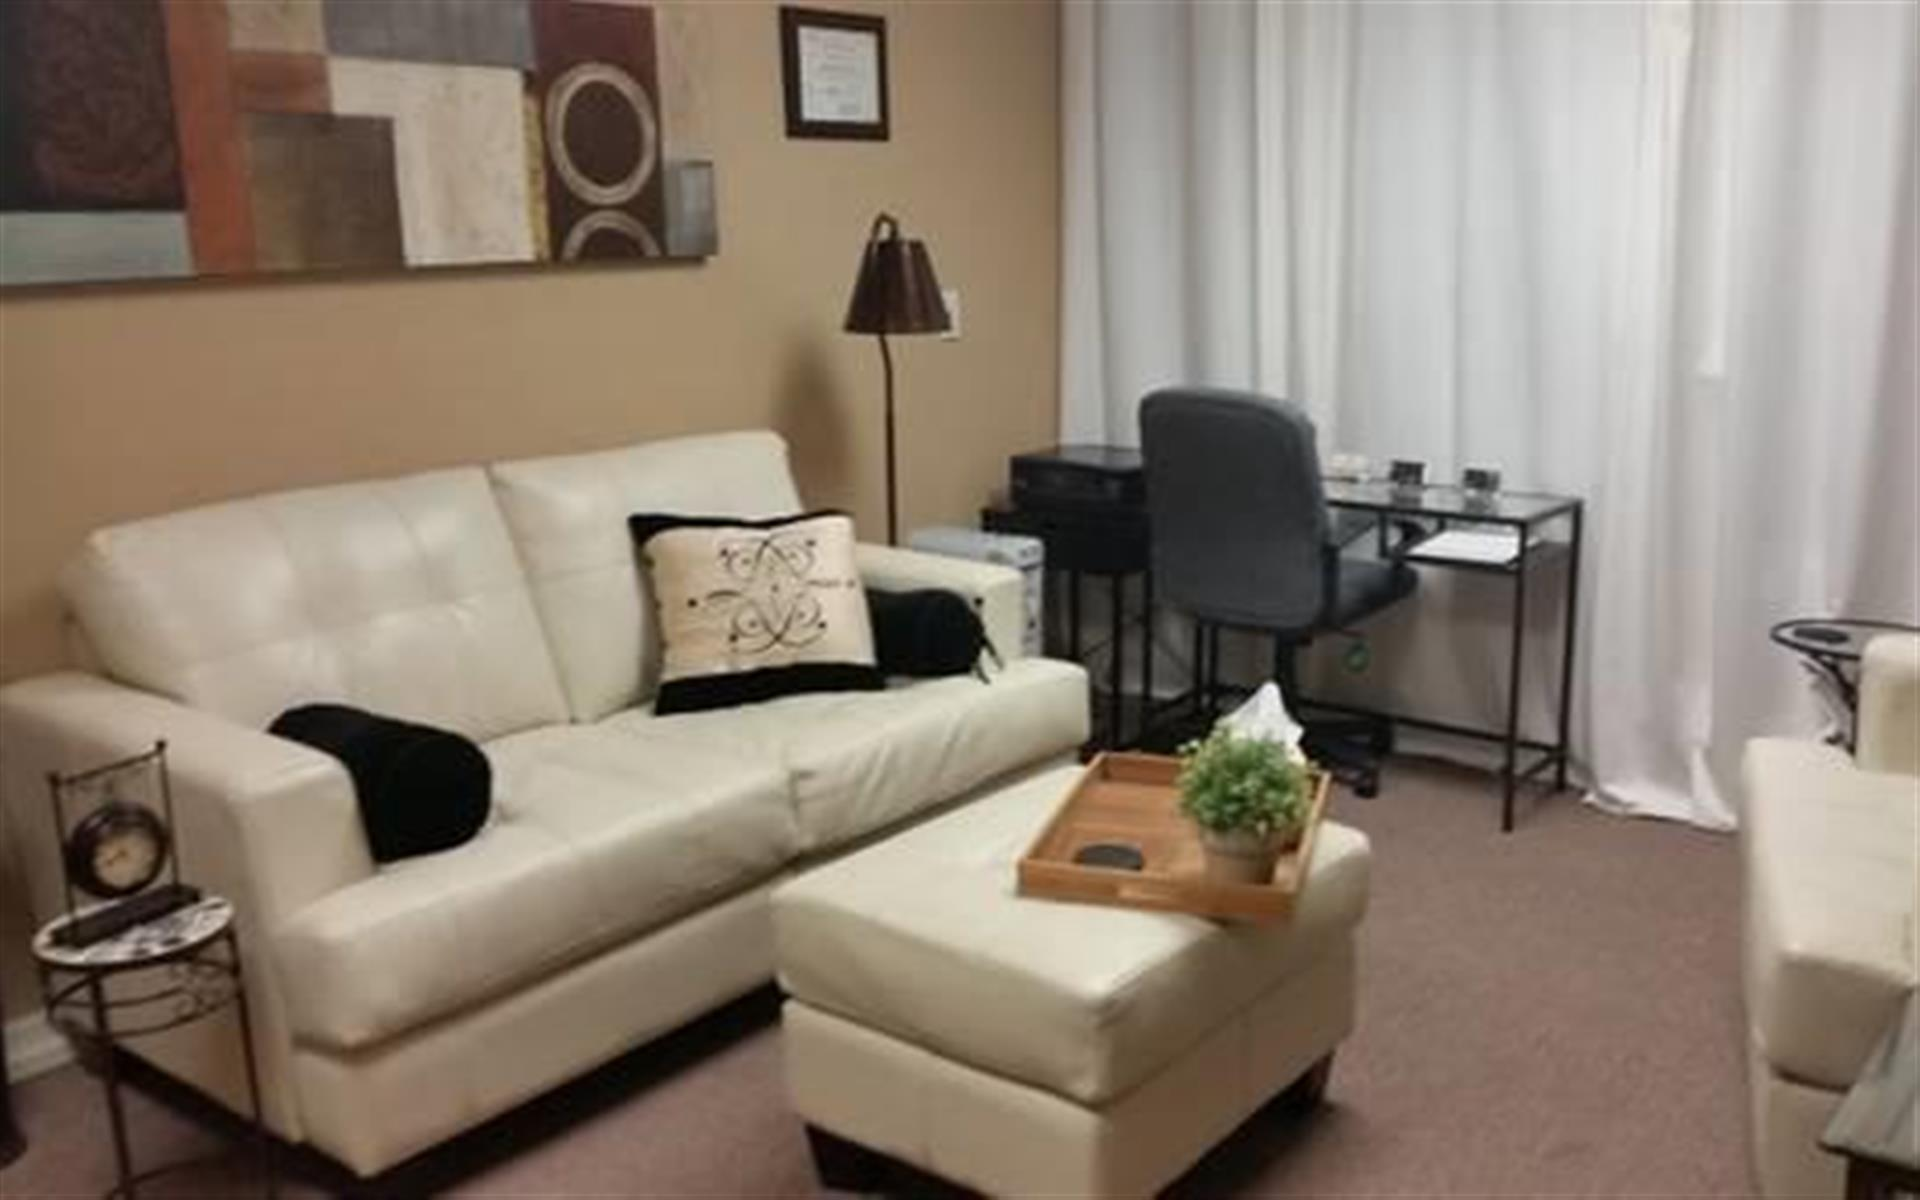 Hillcrest Wellness Centers - South Hillcrest - Full-Time Treatment Room